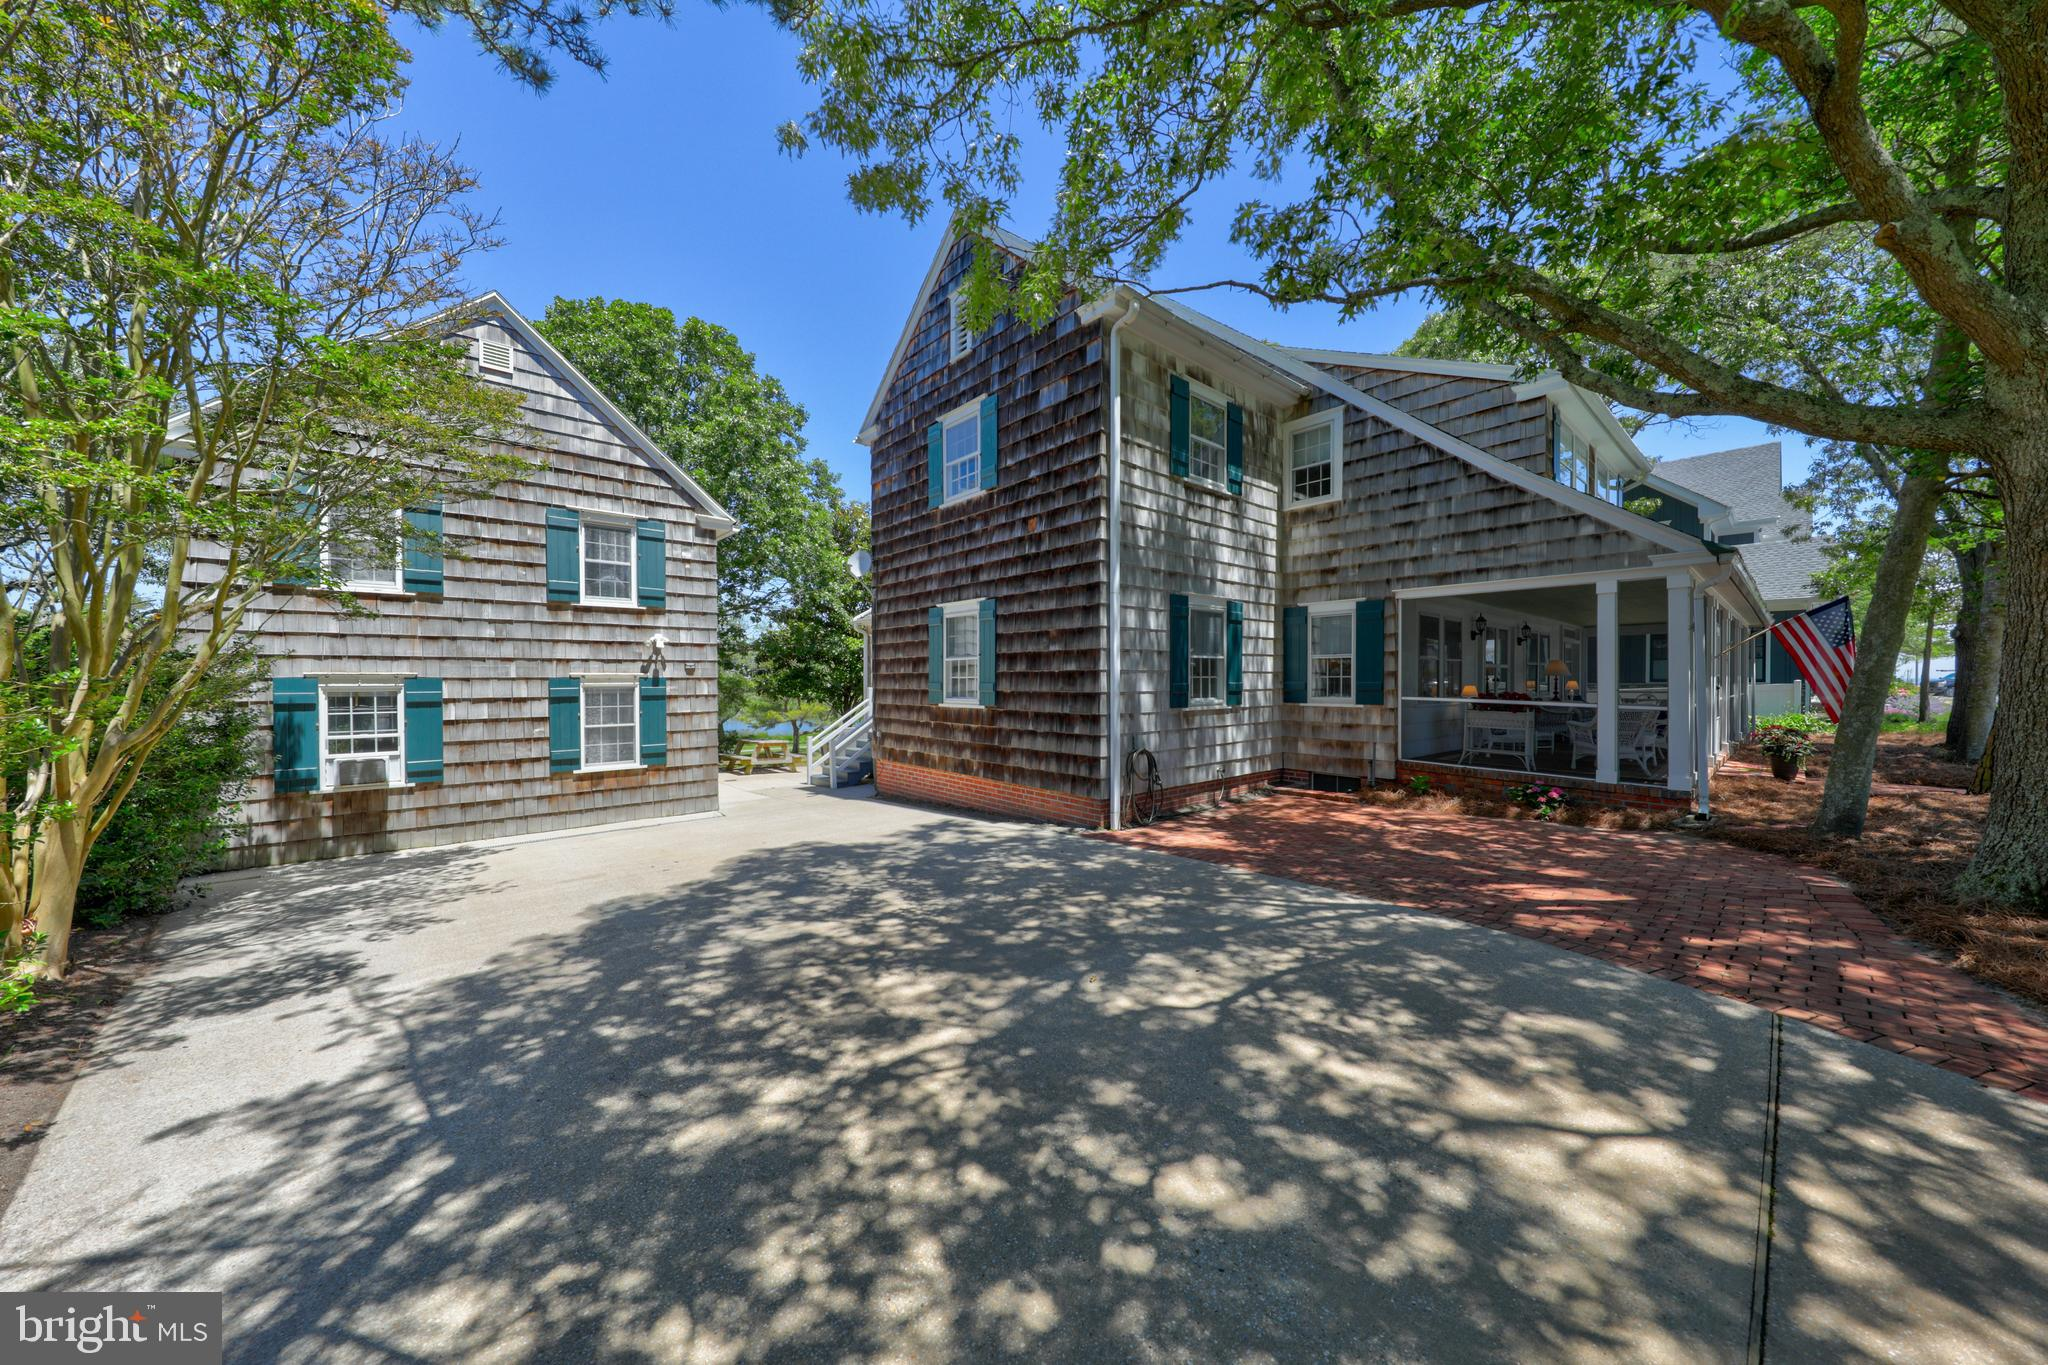 The living is easy in this impressive 8 bedroom ocean block coastal compound perfectly positioned to enjoy lovely Lake Gerar views and located within a level stroll to the sand and surf.  The gracious 6BR main house is situated on an oversize 75x100 lot featuring a quintessential, wraparound front porch, sizeable living room with wood burning fireplace, generous dining room, large kitchen facing the lake,  butler's pantry, den, 1/2 bath and a first floor master suite with full bathroom. Upstairs you will find 5 additional bedrooms, three baths and a sitting area plus a second floor terrace with lake views.   The cozy, detached cottage is perfect for overflow guests and features 2 bedrooms, full hall bathroom and outdoor shower.  Perfect for a family or as a holiday retreat, this property is ideally positioned to enjoy the proximity to the beach, cafes and restaurants and premier shopping.